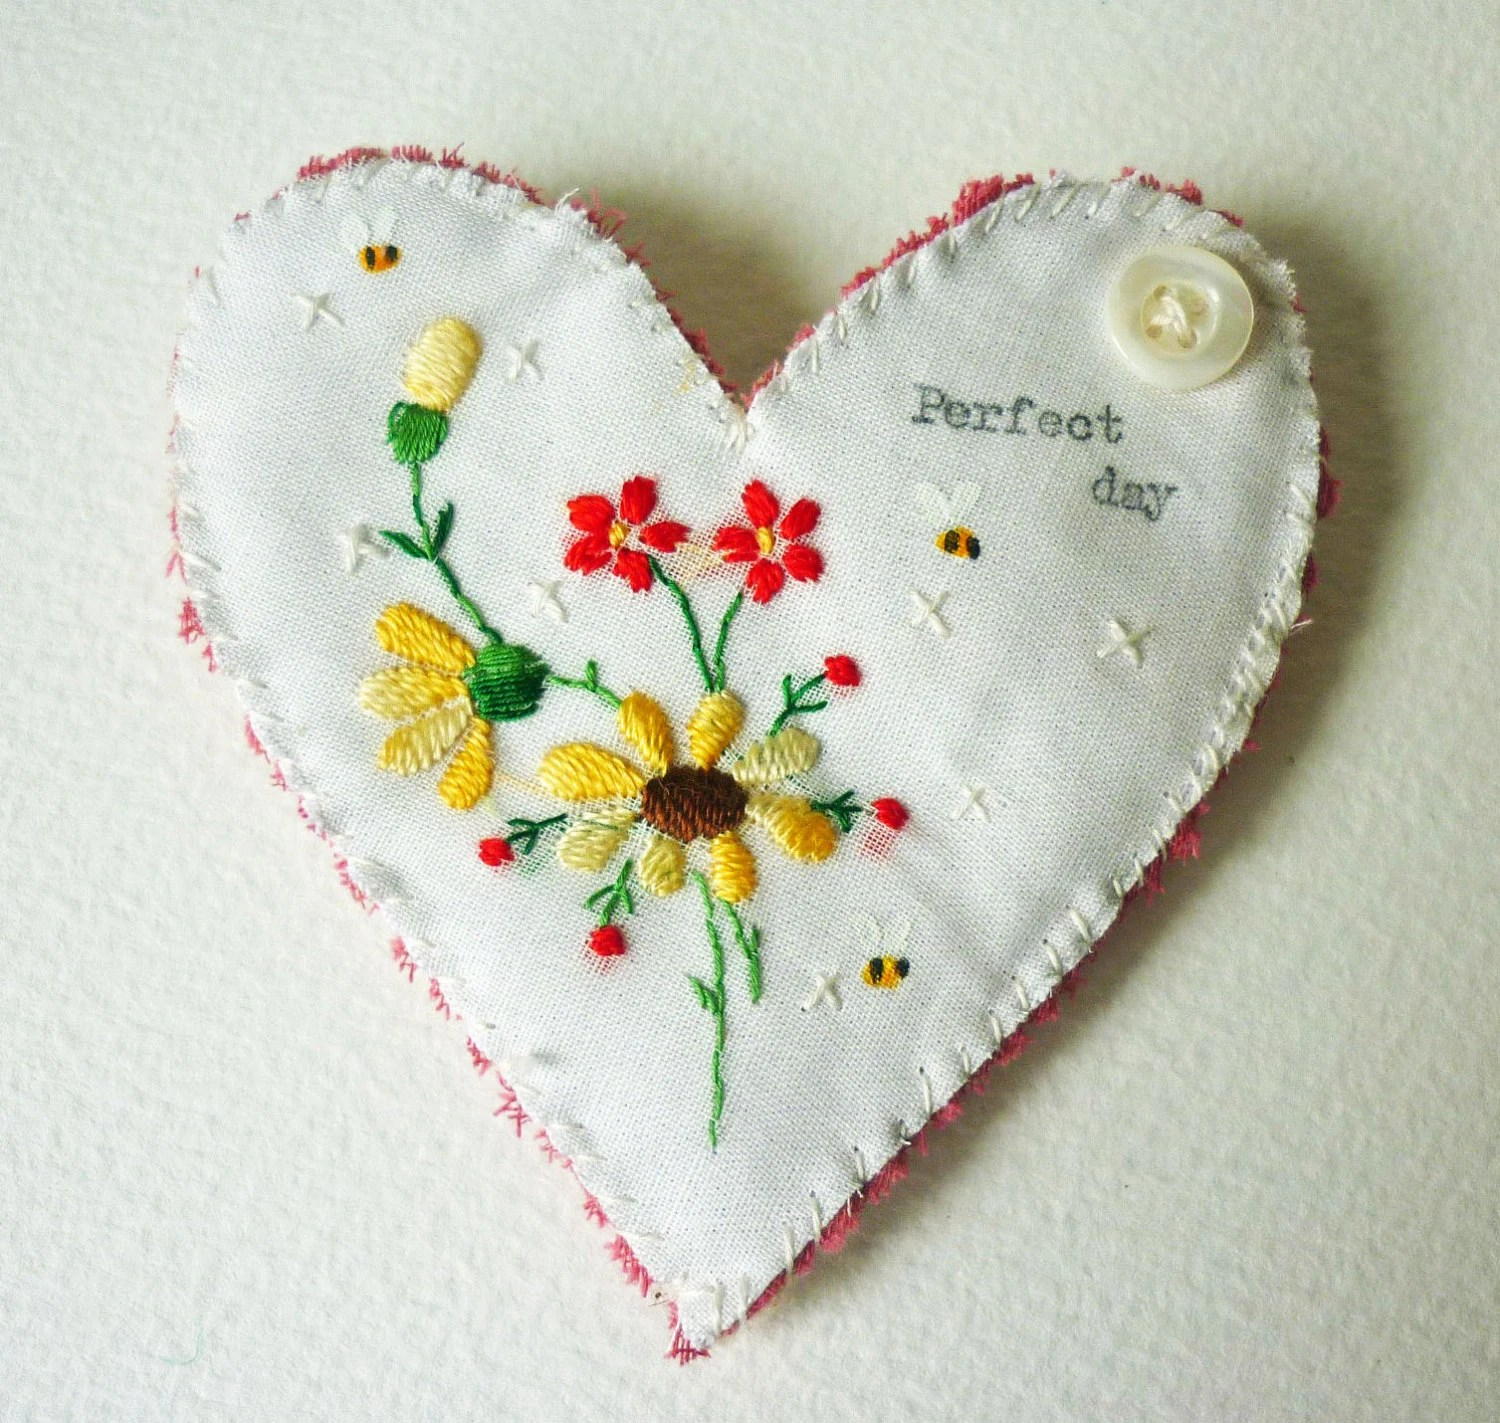 Heart shaped Brooch made from vintage finest embroidered Swiss Cotton